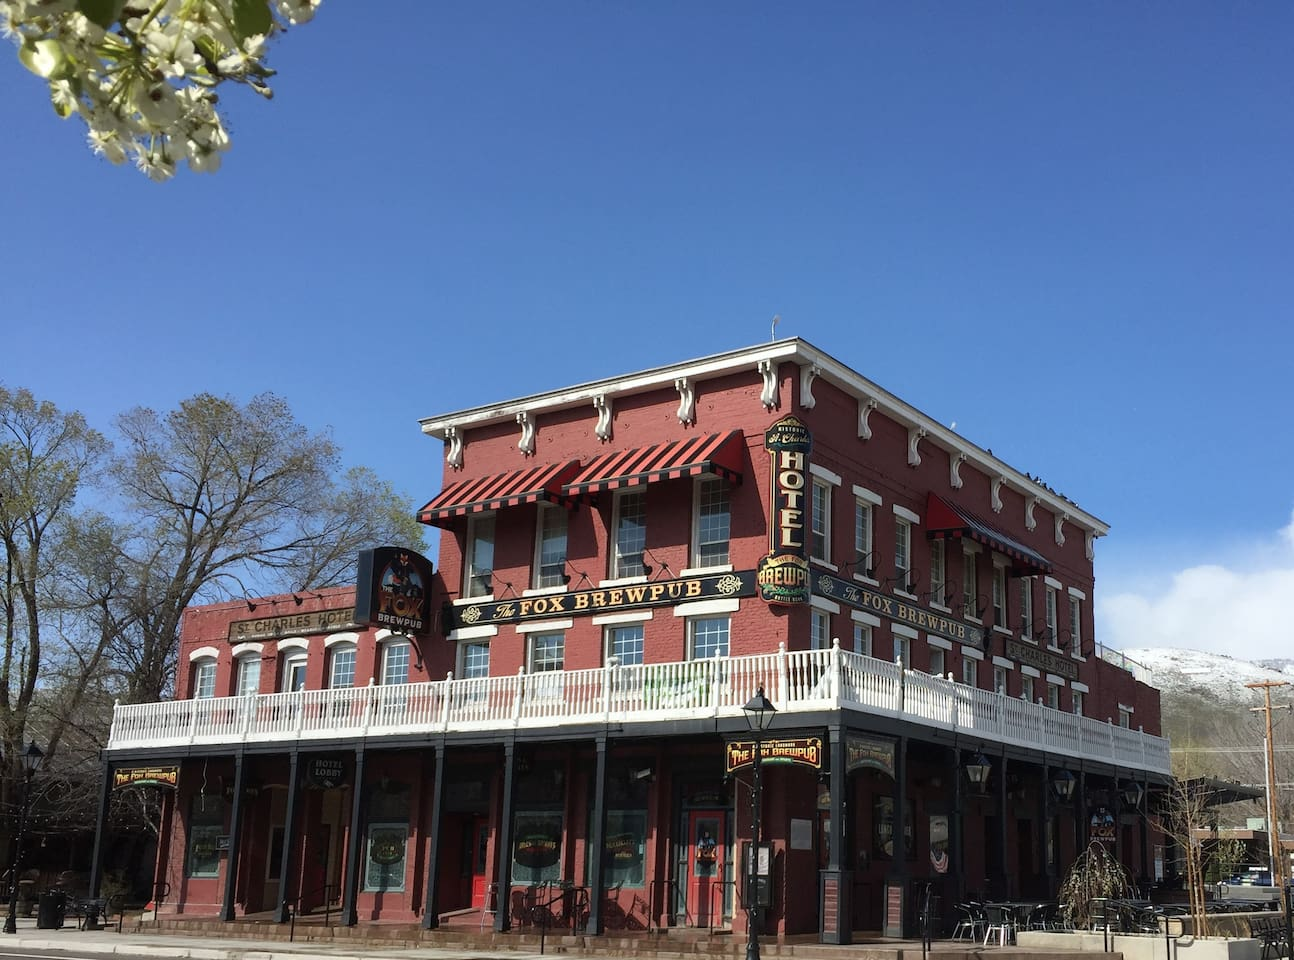 Historic St. Charles Hotel in Carson City NV